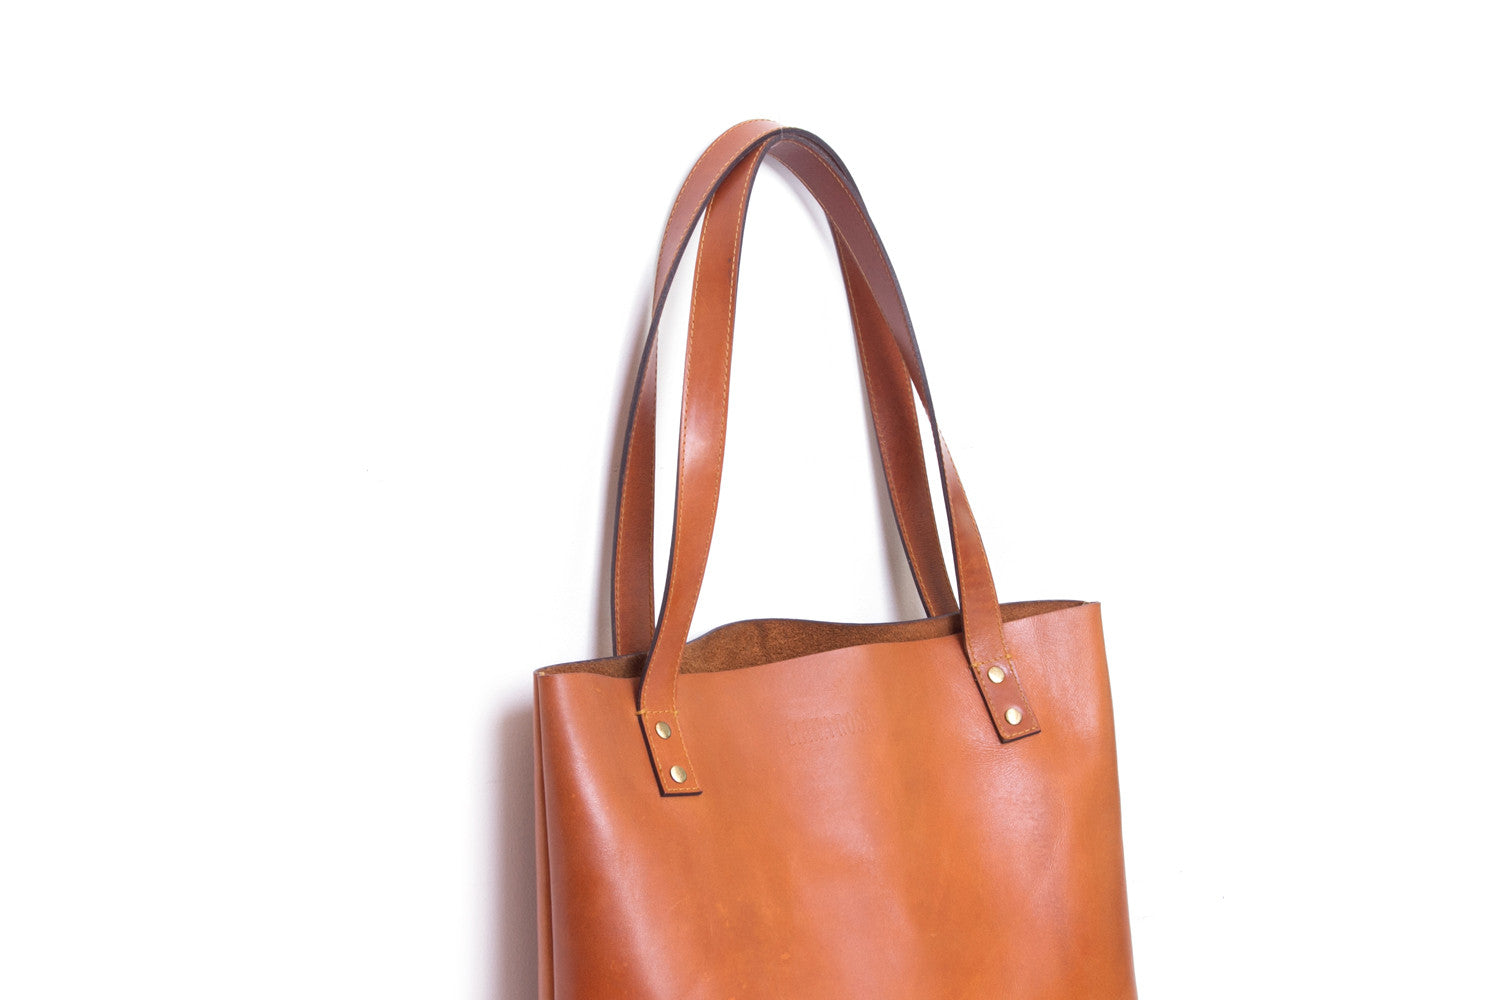 Henry Cognac Brown Leather Tote Bag Close Up View by Liana Rosa